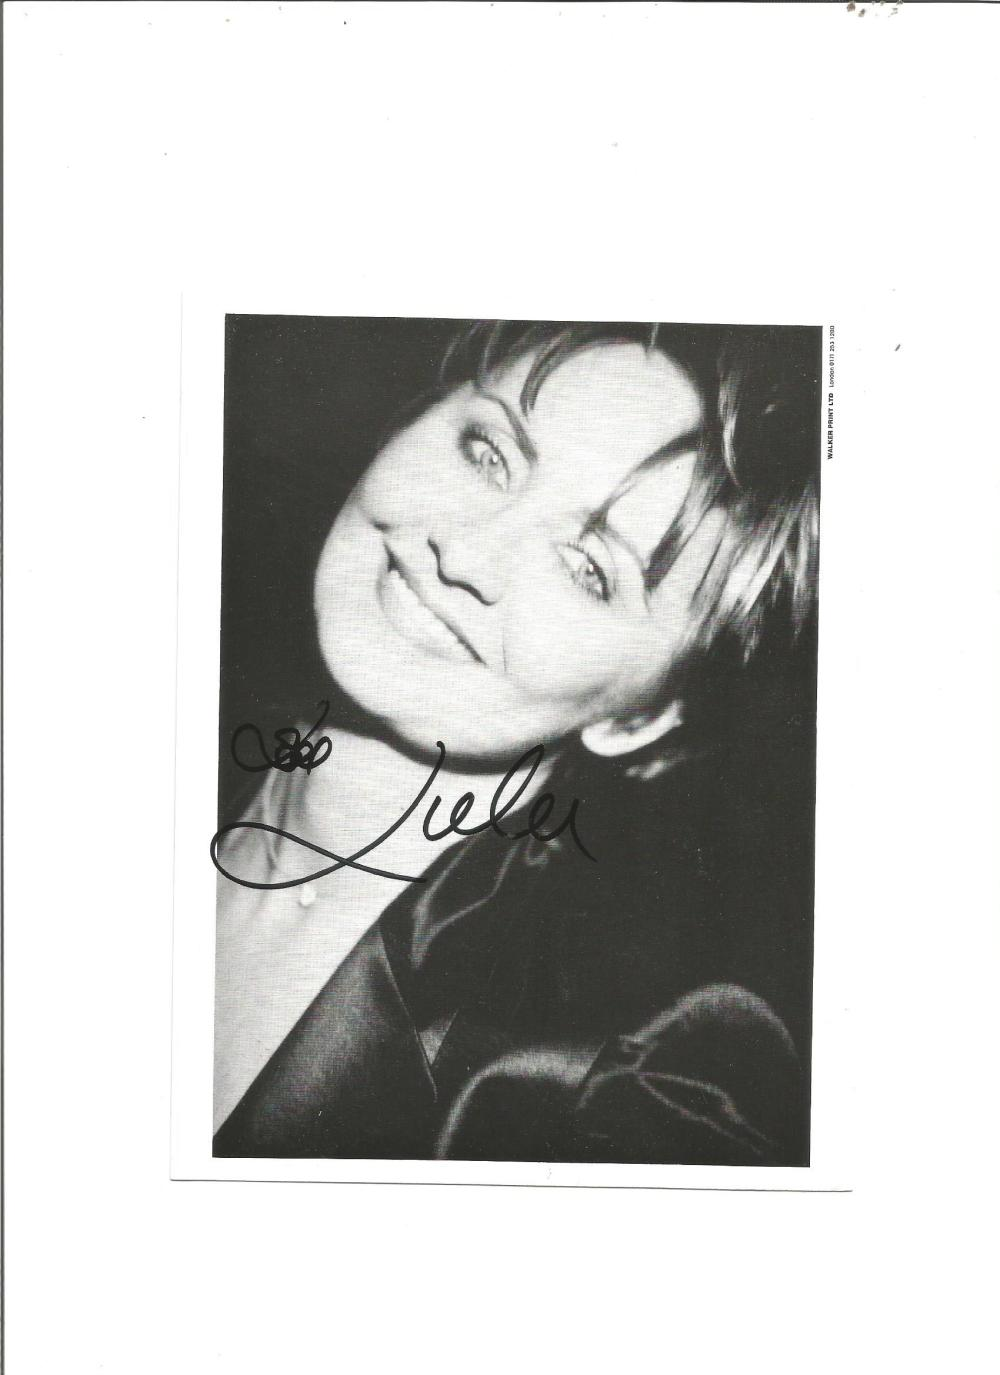 Lulu signed 7x5 b/w photo. Sang theme tune for The Man with the Golden Gun. Good Condition. All